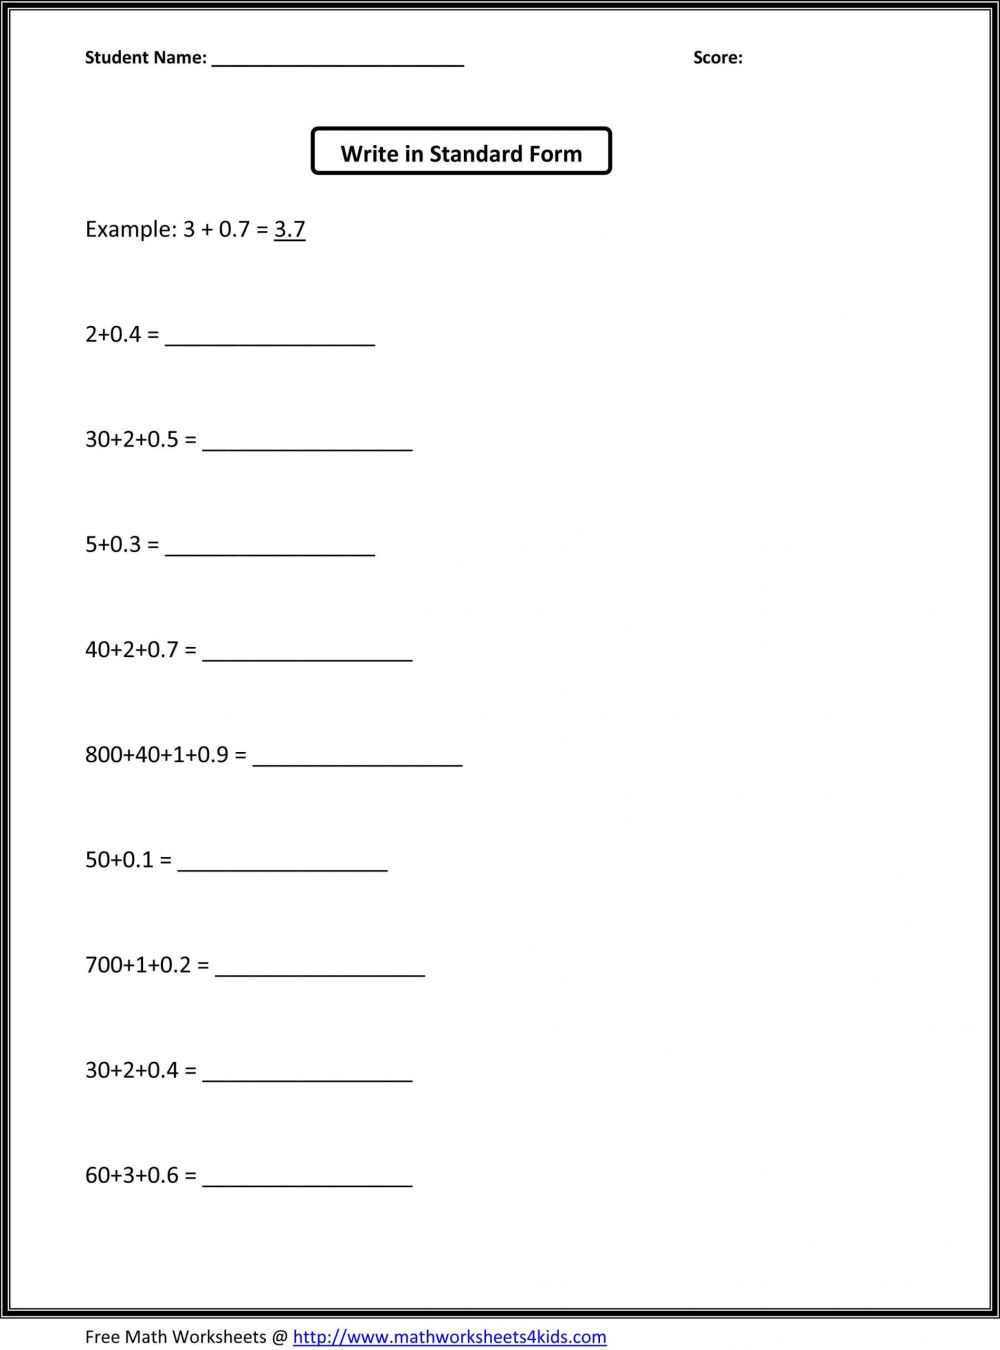 medium resolution of 4 Free Math Worksheets Third Grade 3 Measurement Converting Yards Feet  Inches Easy - apocalomegaproductions.com